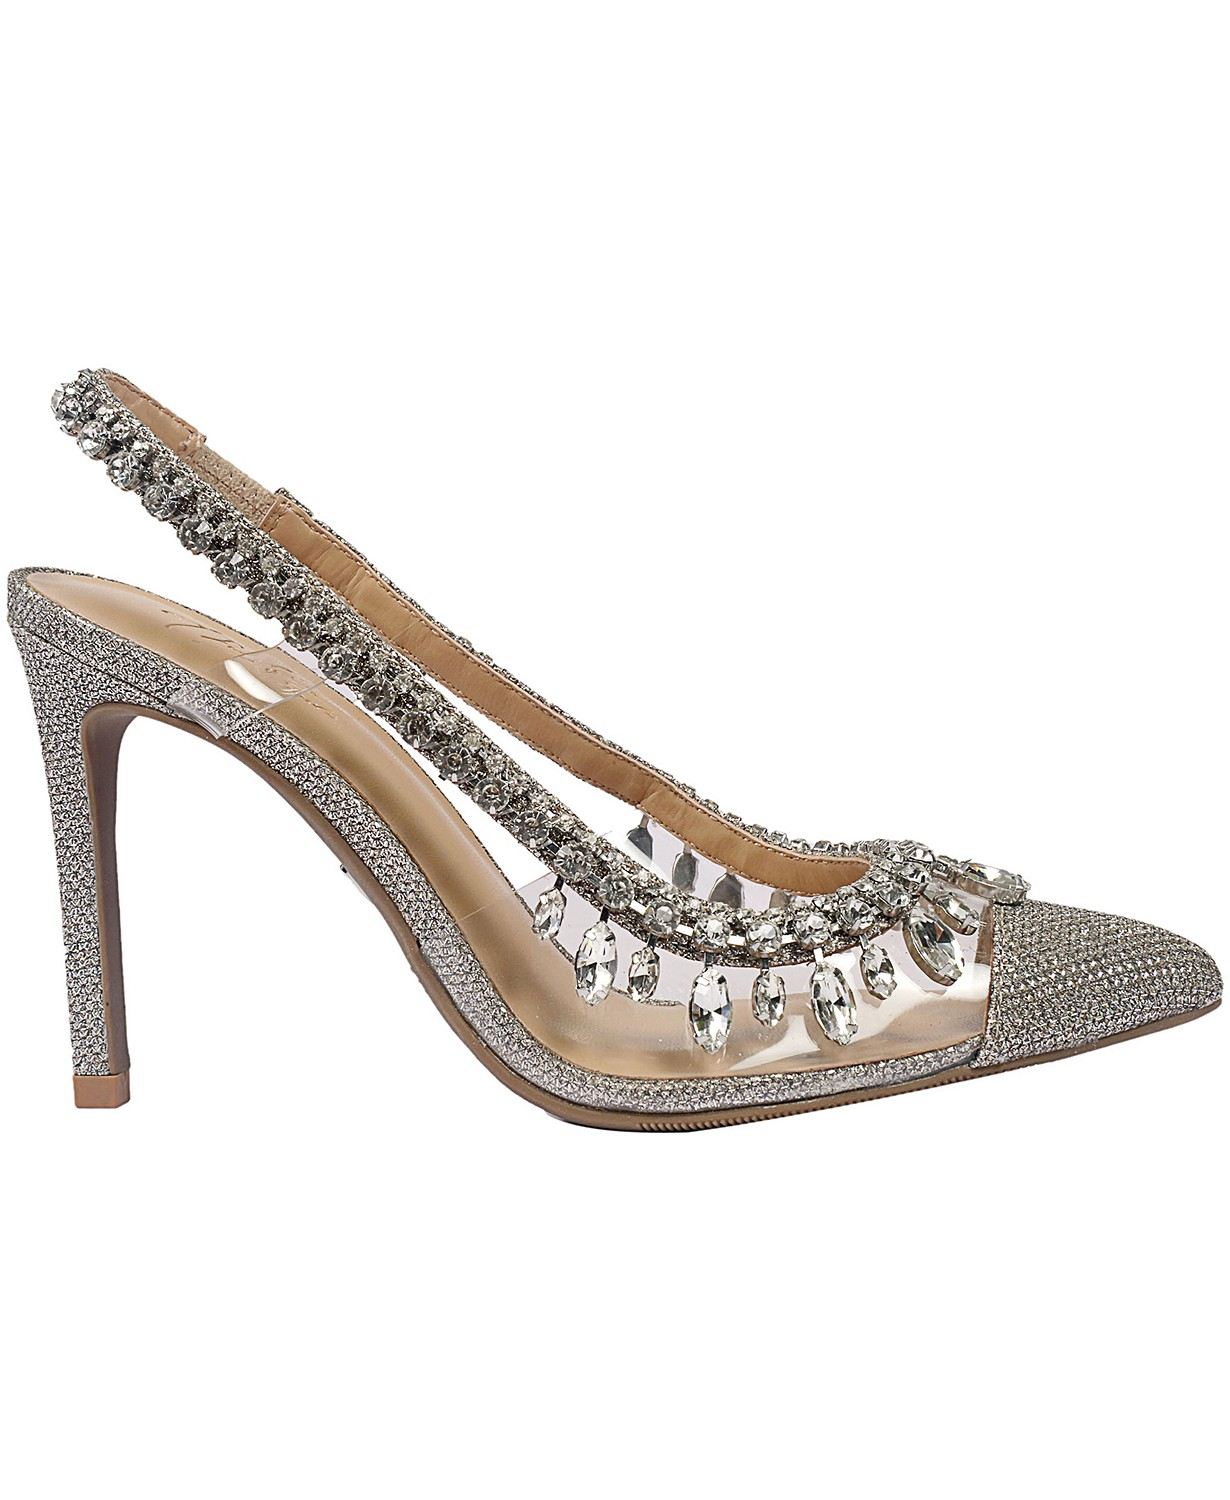 Thalia Sodi Kenzeyy Pumps for Macys.